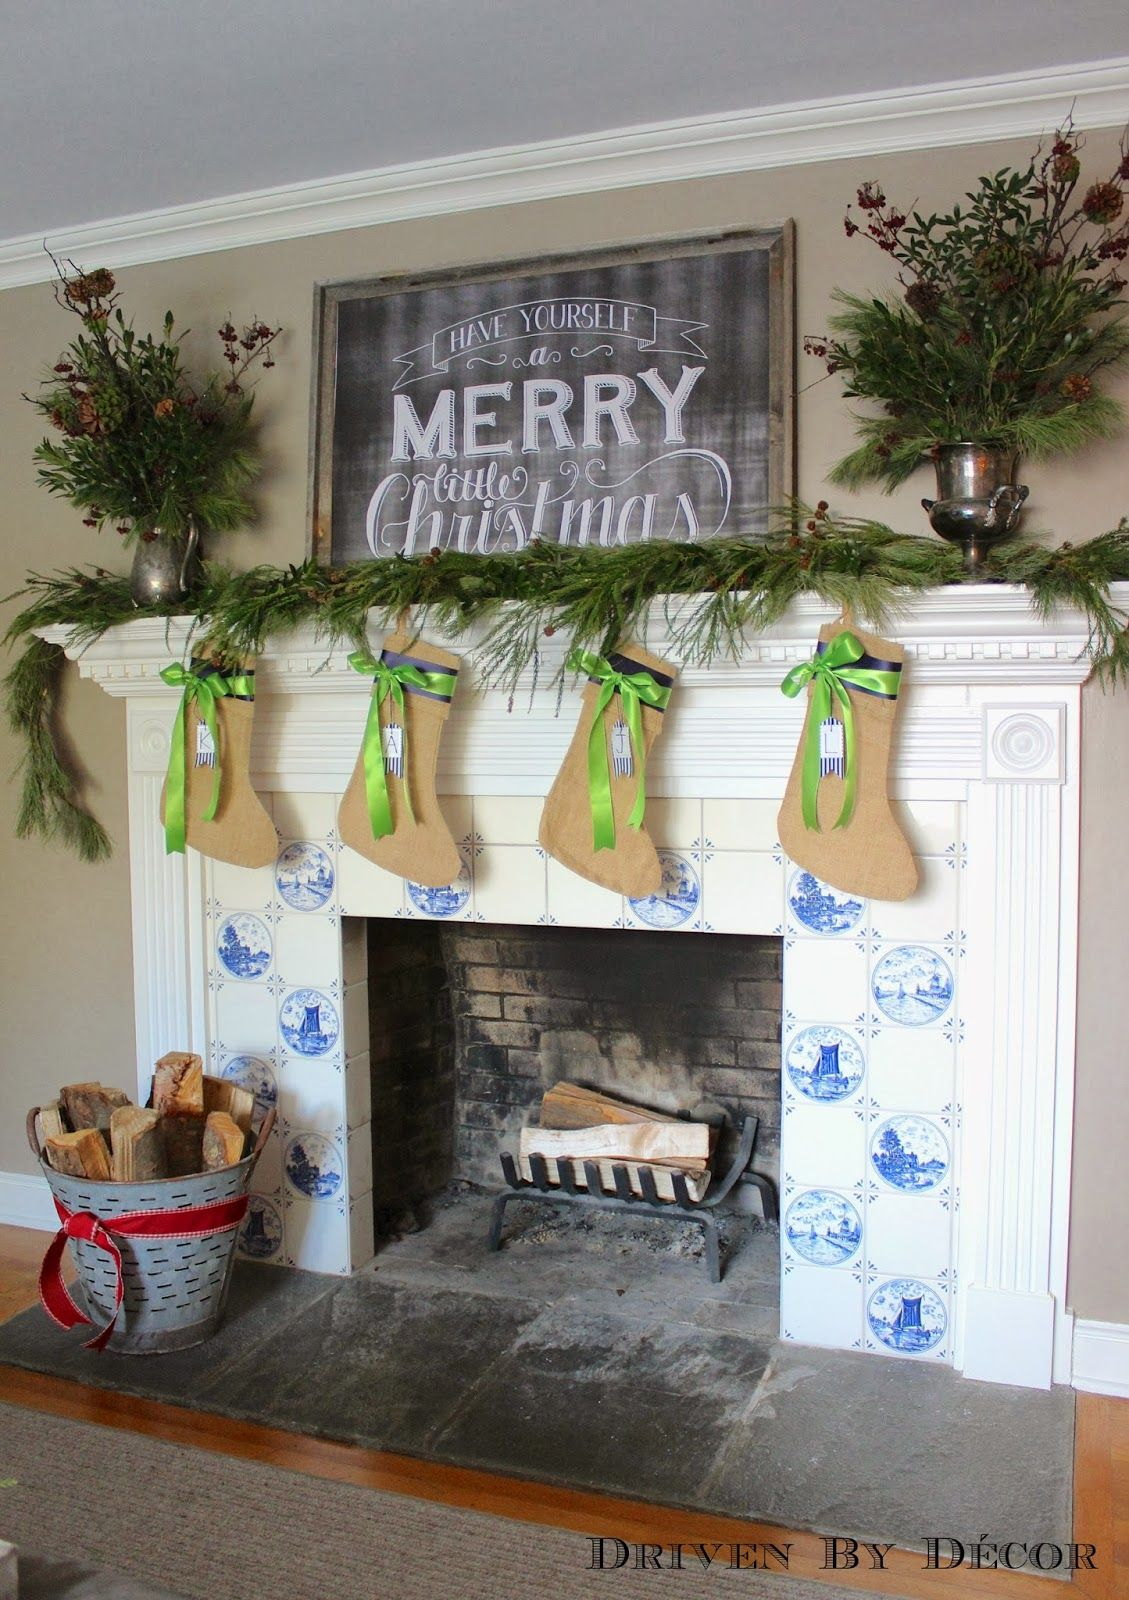 Our Christmas Home Tour #Christmas #ChristmasHome